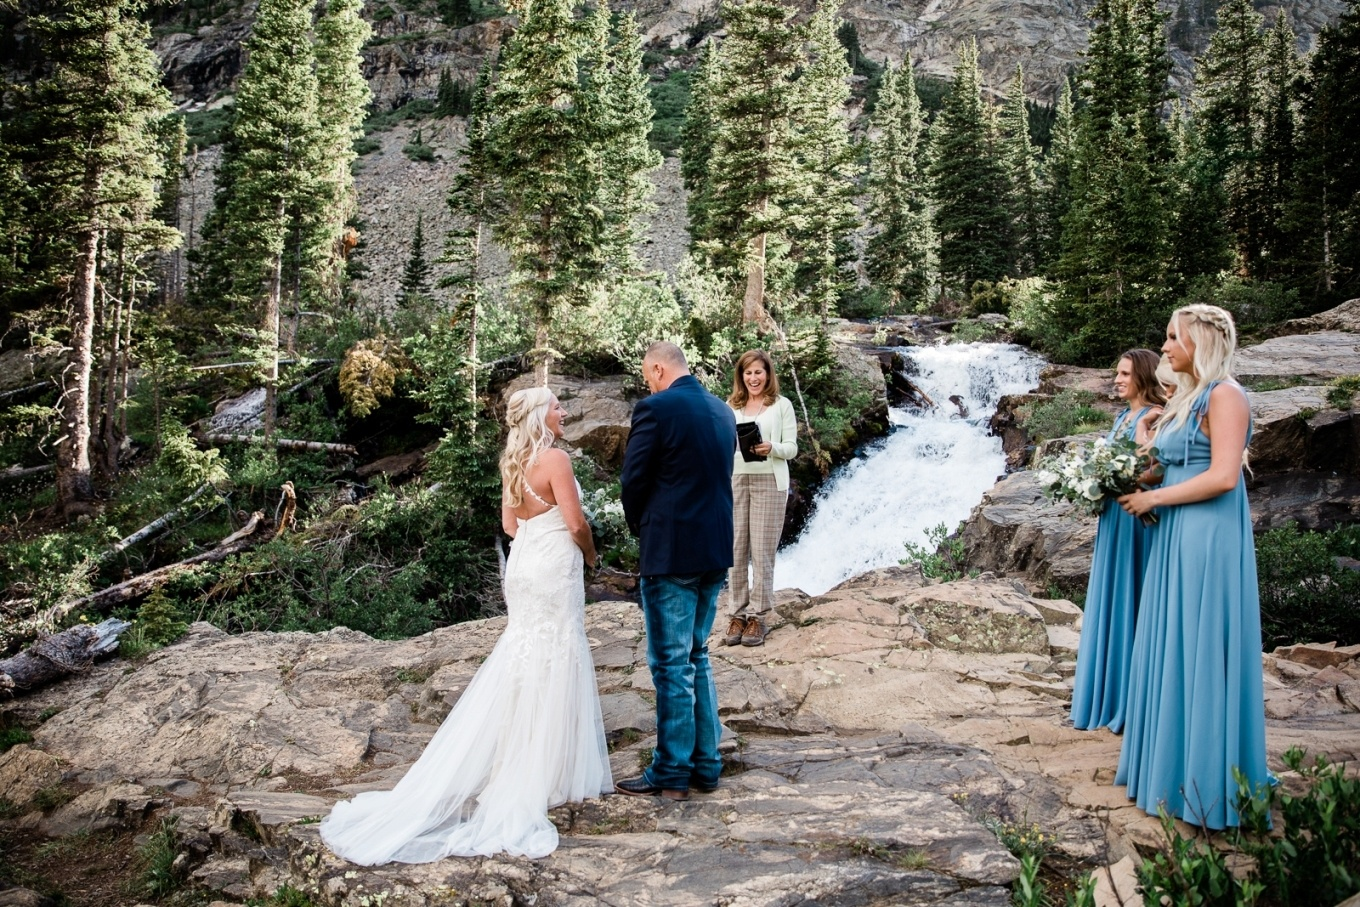 elopement ceremony at a waterfall in Colorado